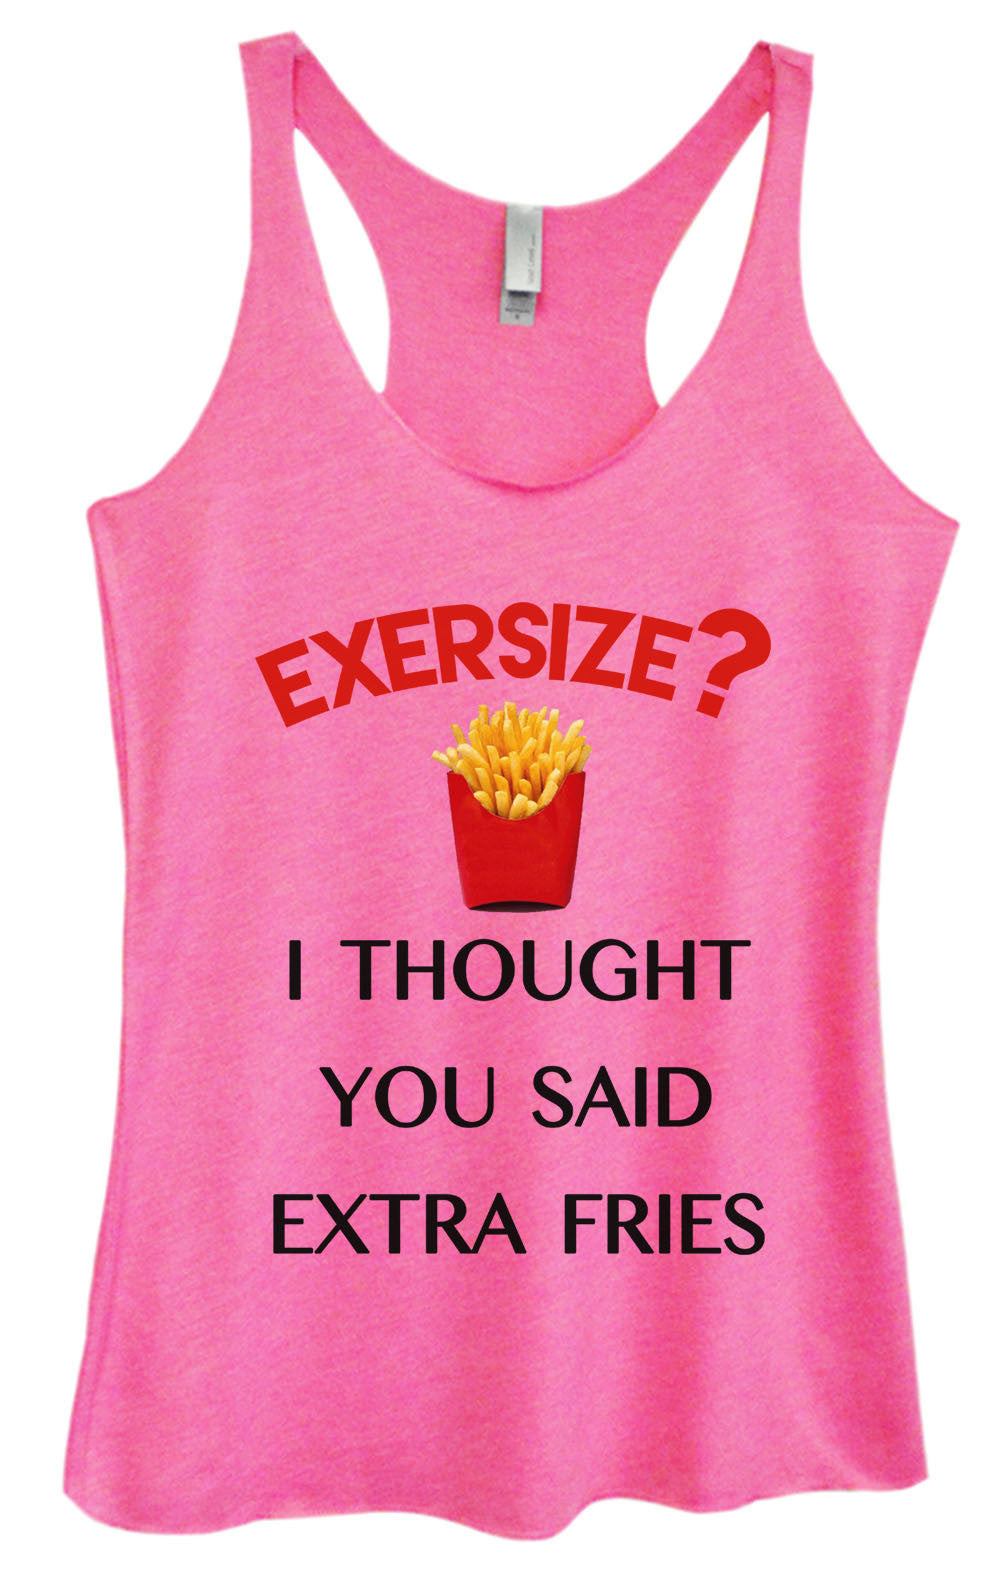 Womens Fashion Triblend Tank Top - Exersize? I Thought You Said Extra Fries - Tri-518 - Funny Shirts Tank Tops Burnouts and Triblends  - 1